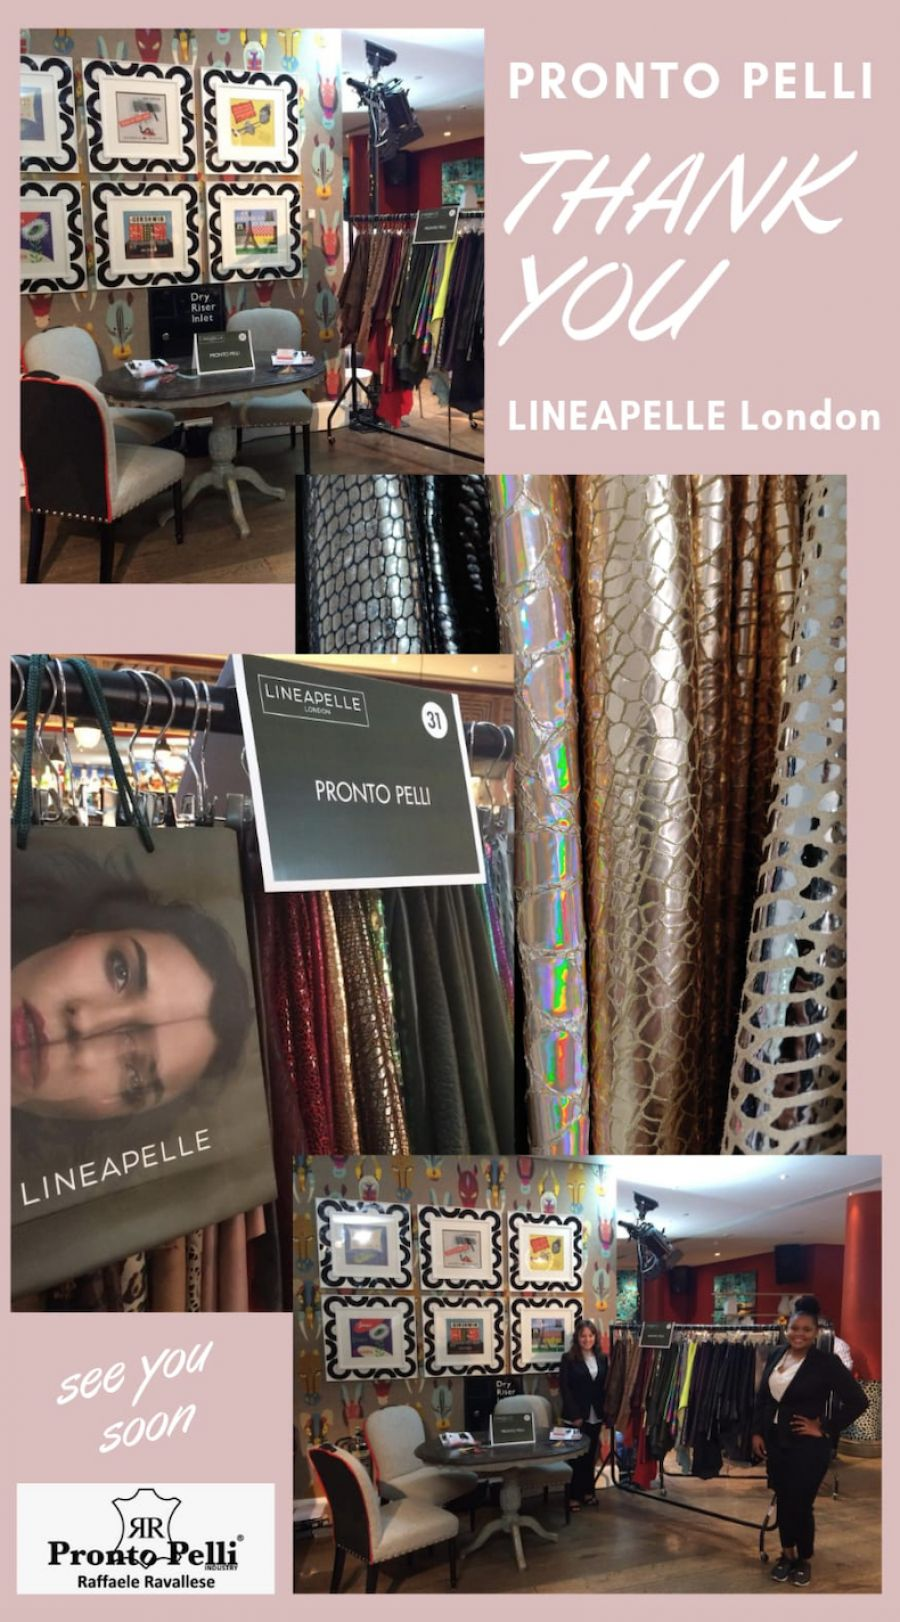 THANK YOU LINEAPELLE LONDON WINTER 20/21